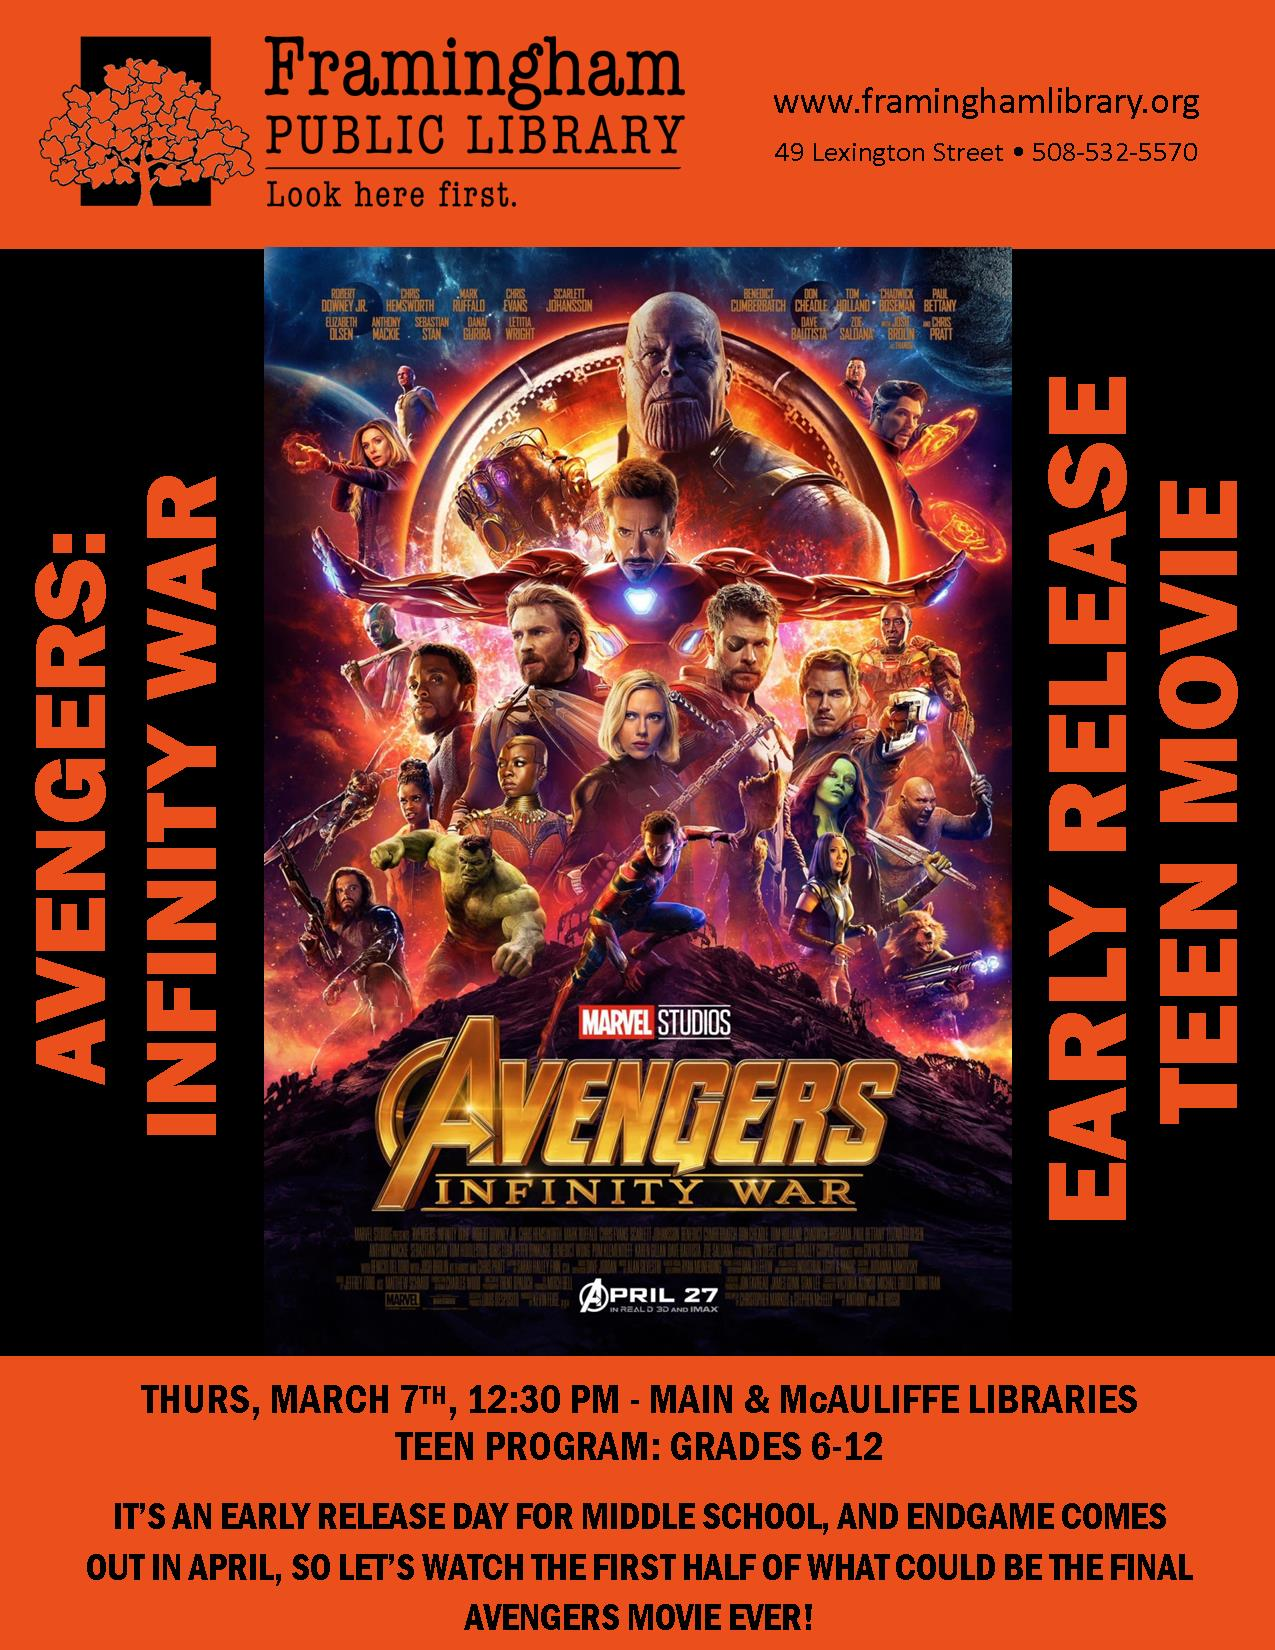 Half Day Teen Movie at McAuliffe Branch - Avengers: Infinity War thumbnail Photo